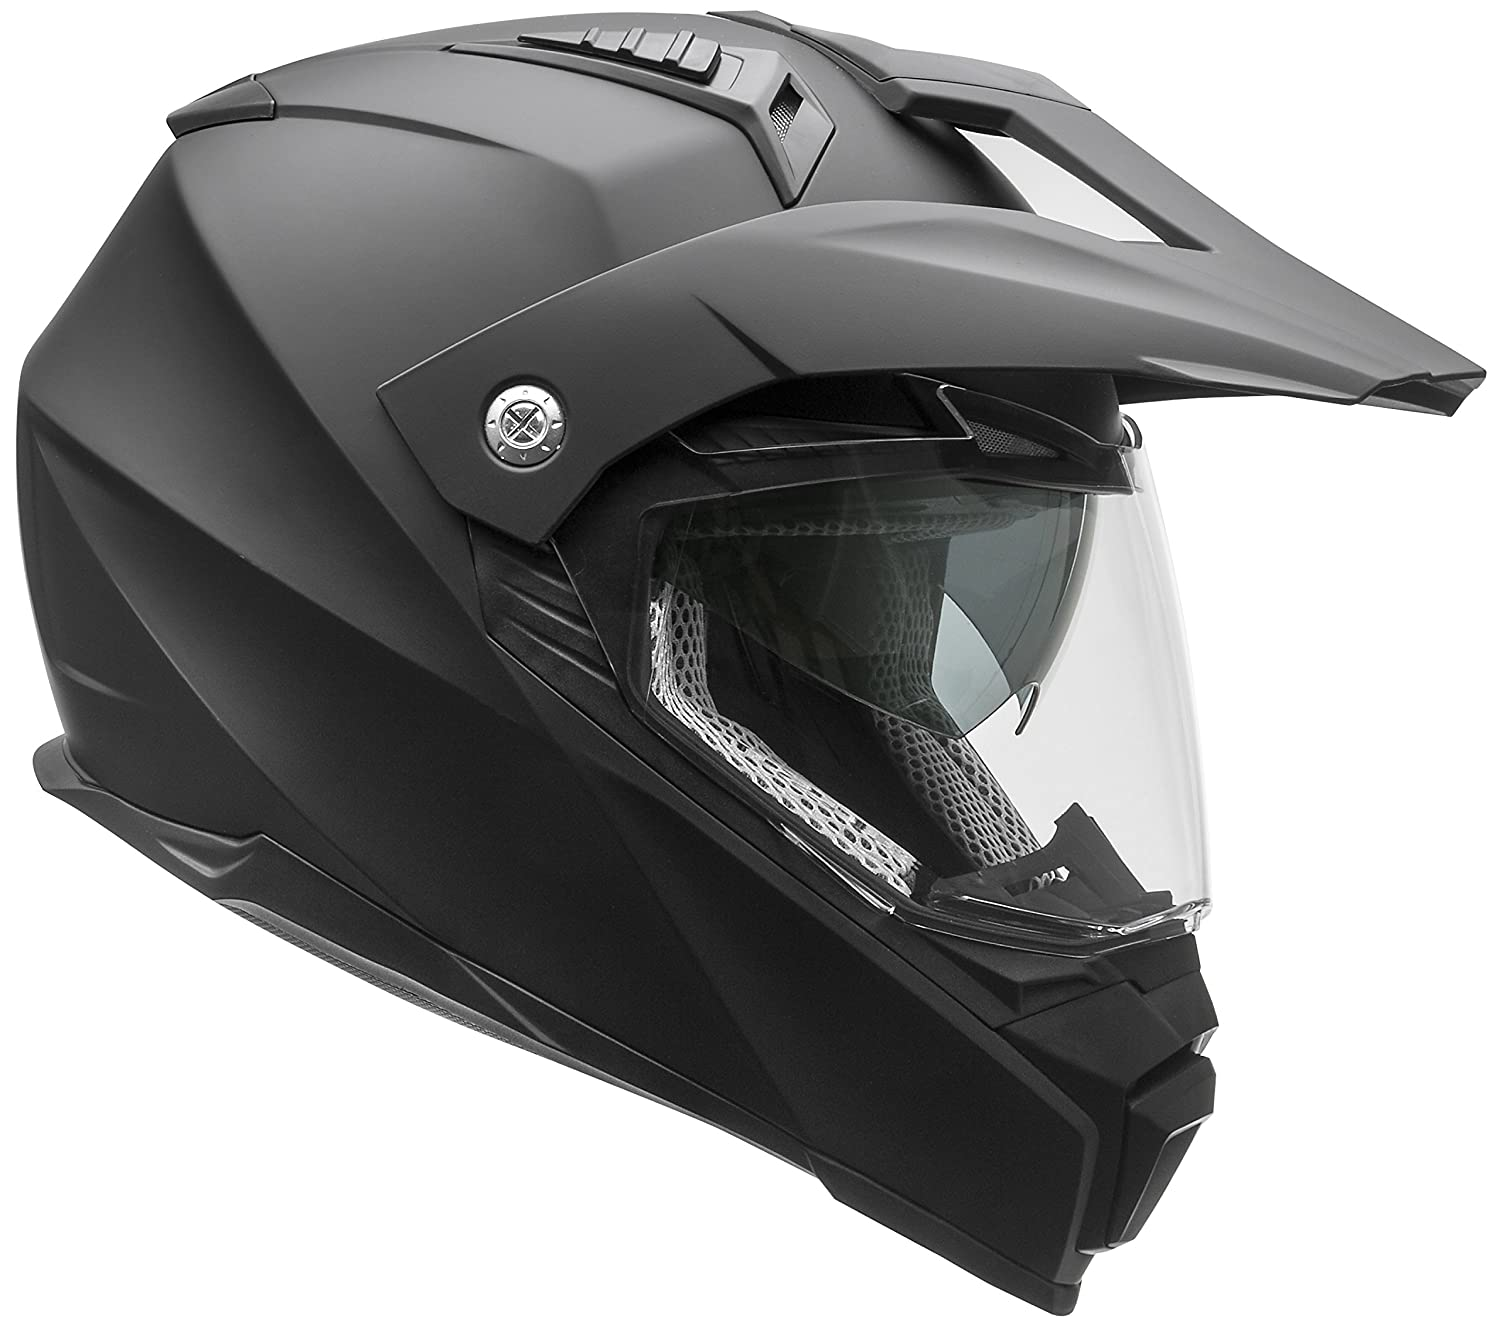 ega Helmets Cross Tour 2 Dual Sport Helmet with Internal Sun Visor – Full Face Motorcycle Helmet for Motocross ATV MX Enduro Quad